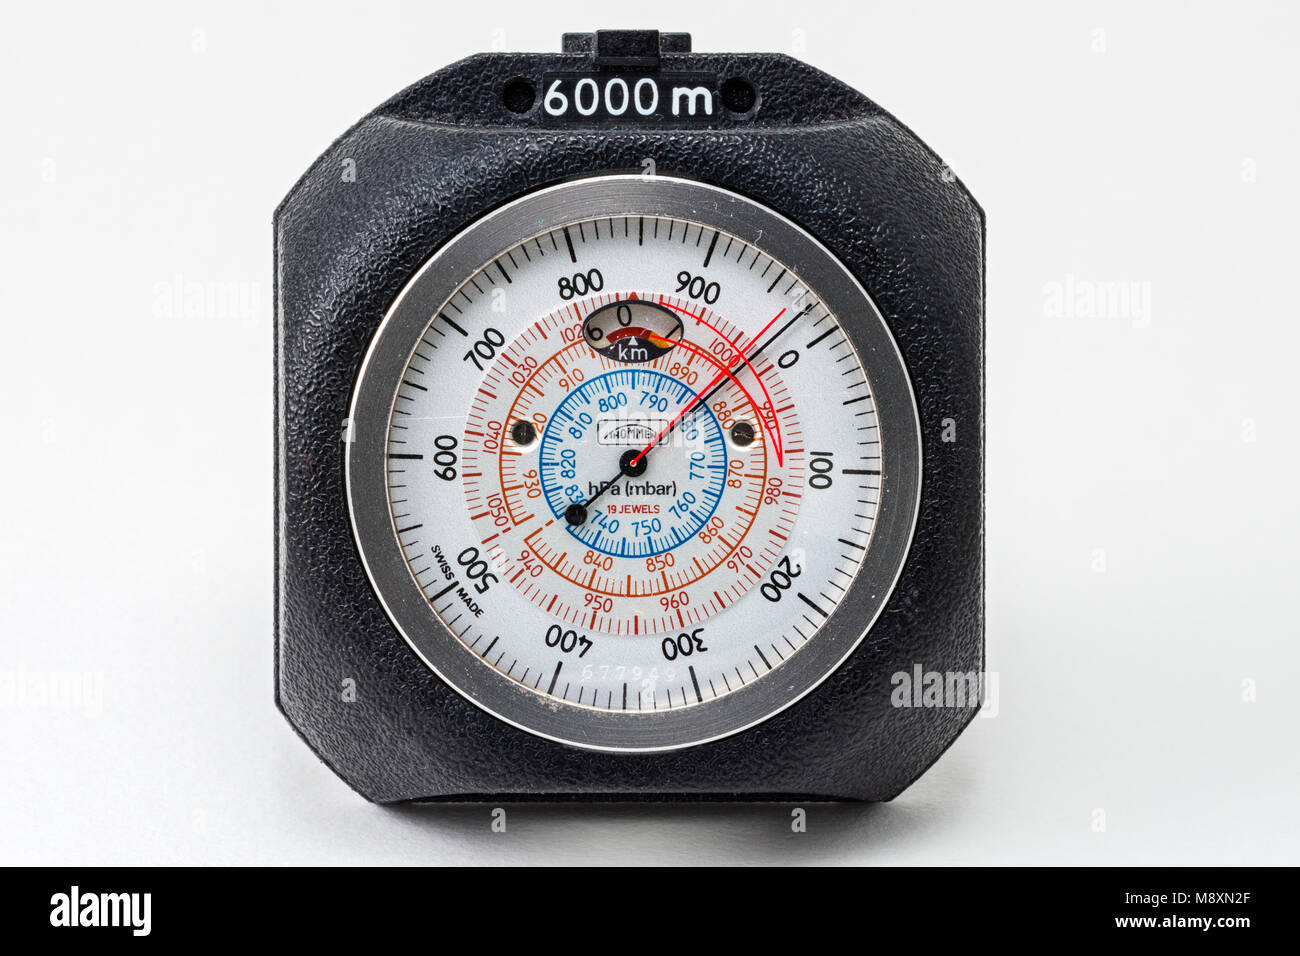 A Swiss made Thommen precision mechanical analogue altimeter.  Calibrated to 6000 metres. - Stock Image